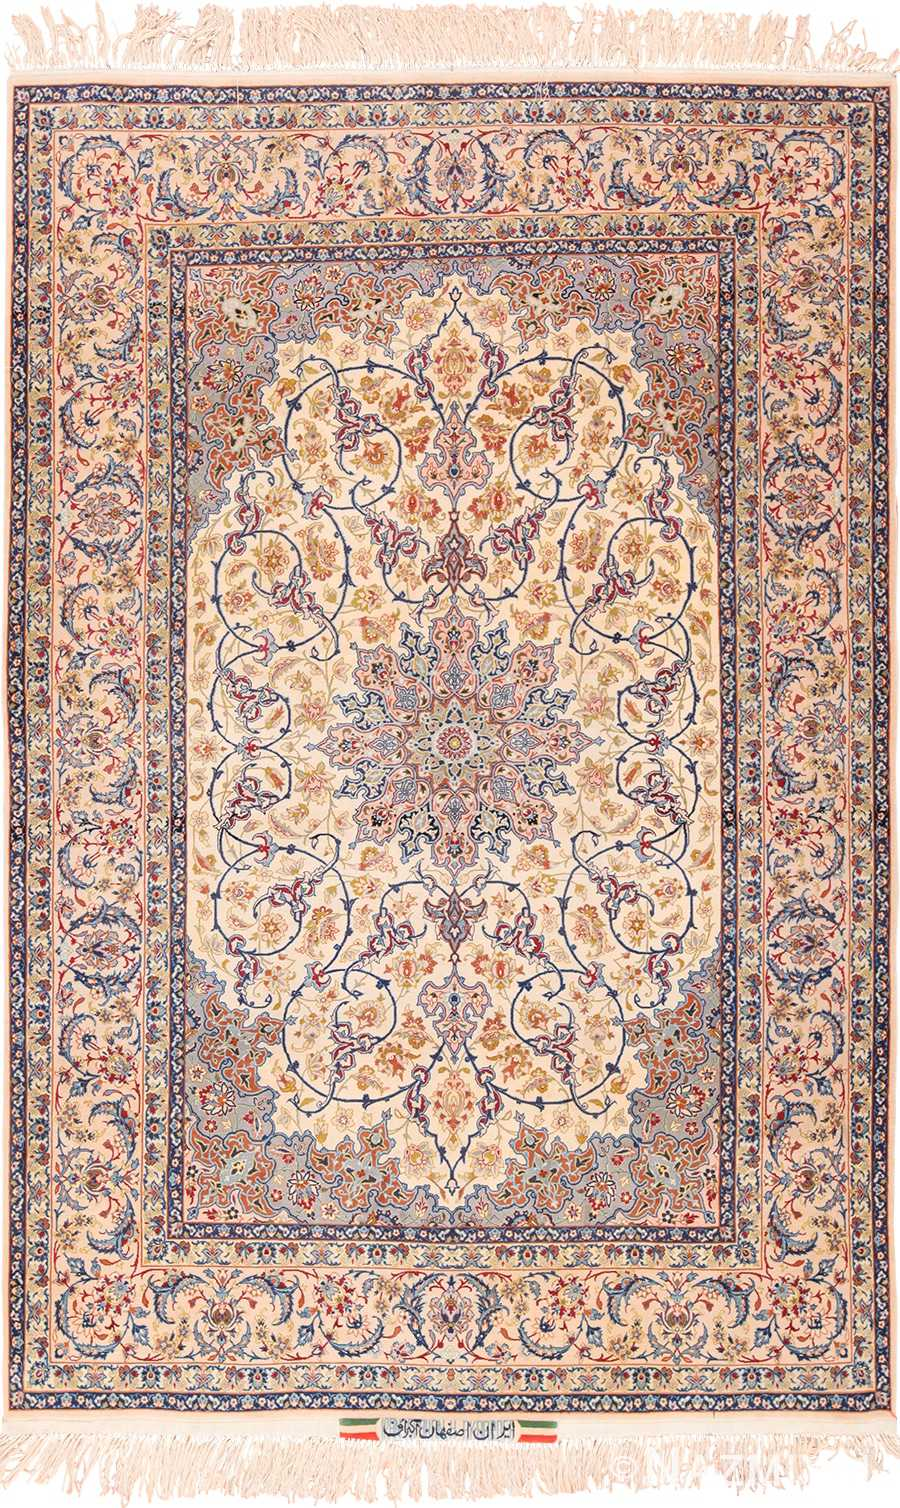 Ivory Background Vintage Persian Isfahan Rug 49599 by Nazmiyal